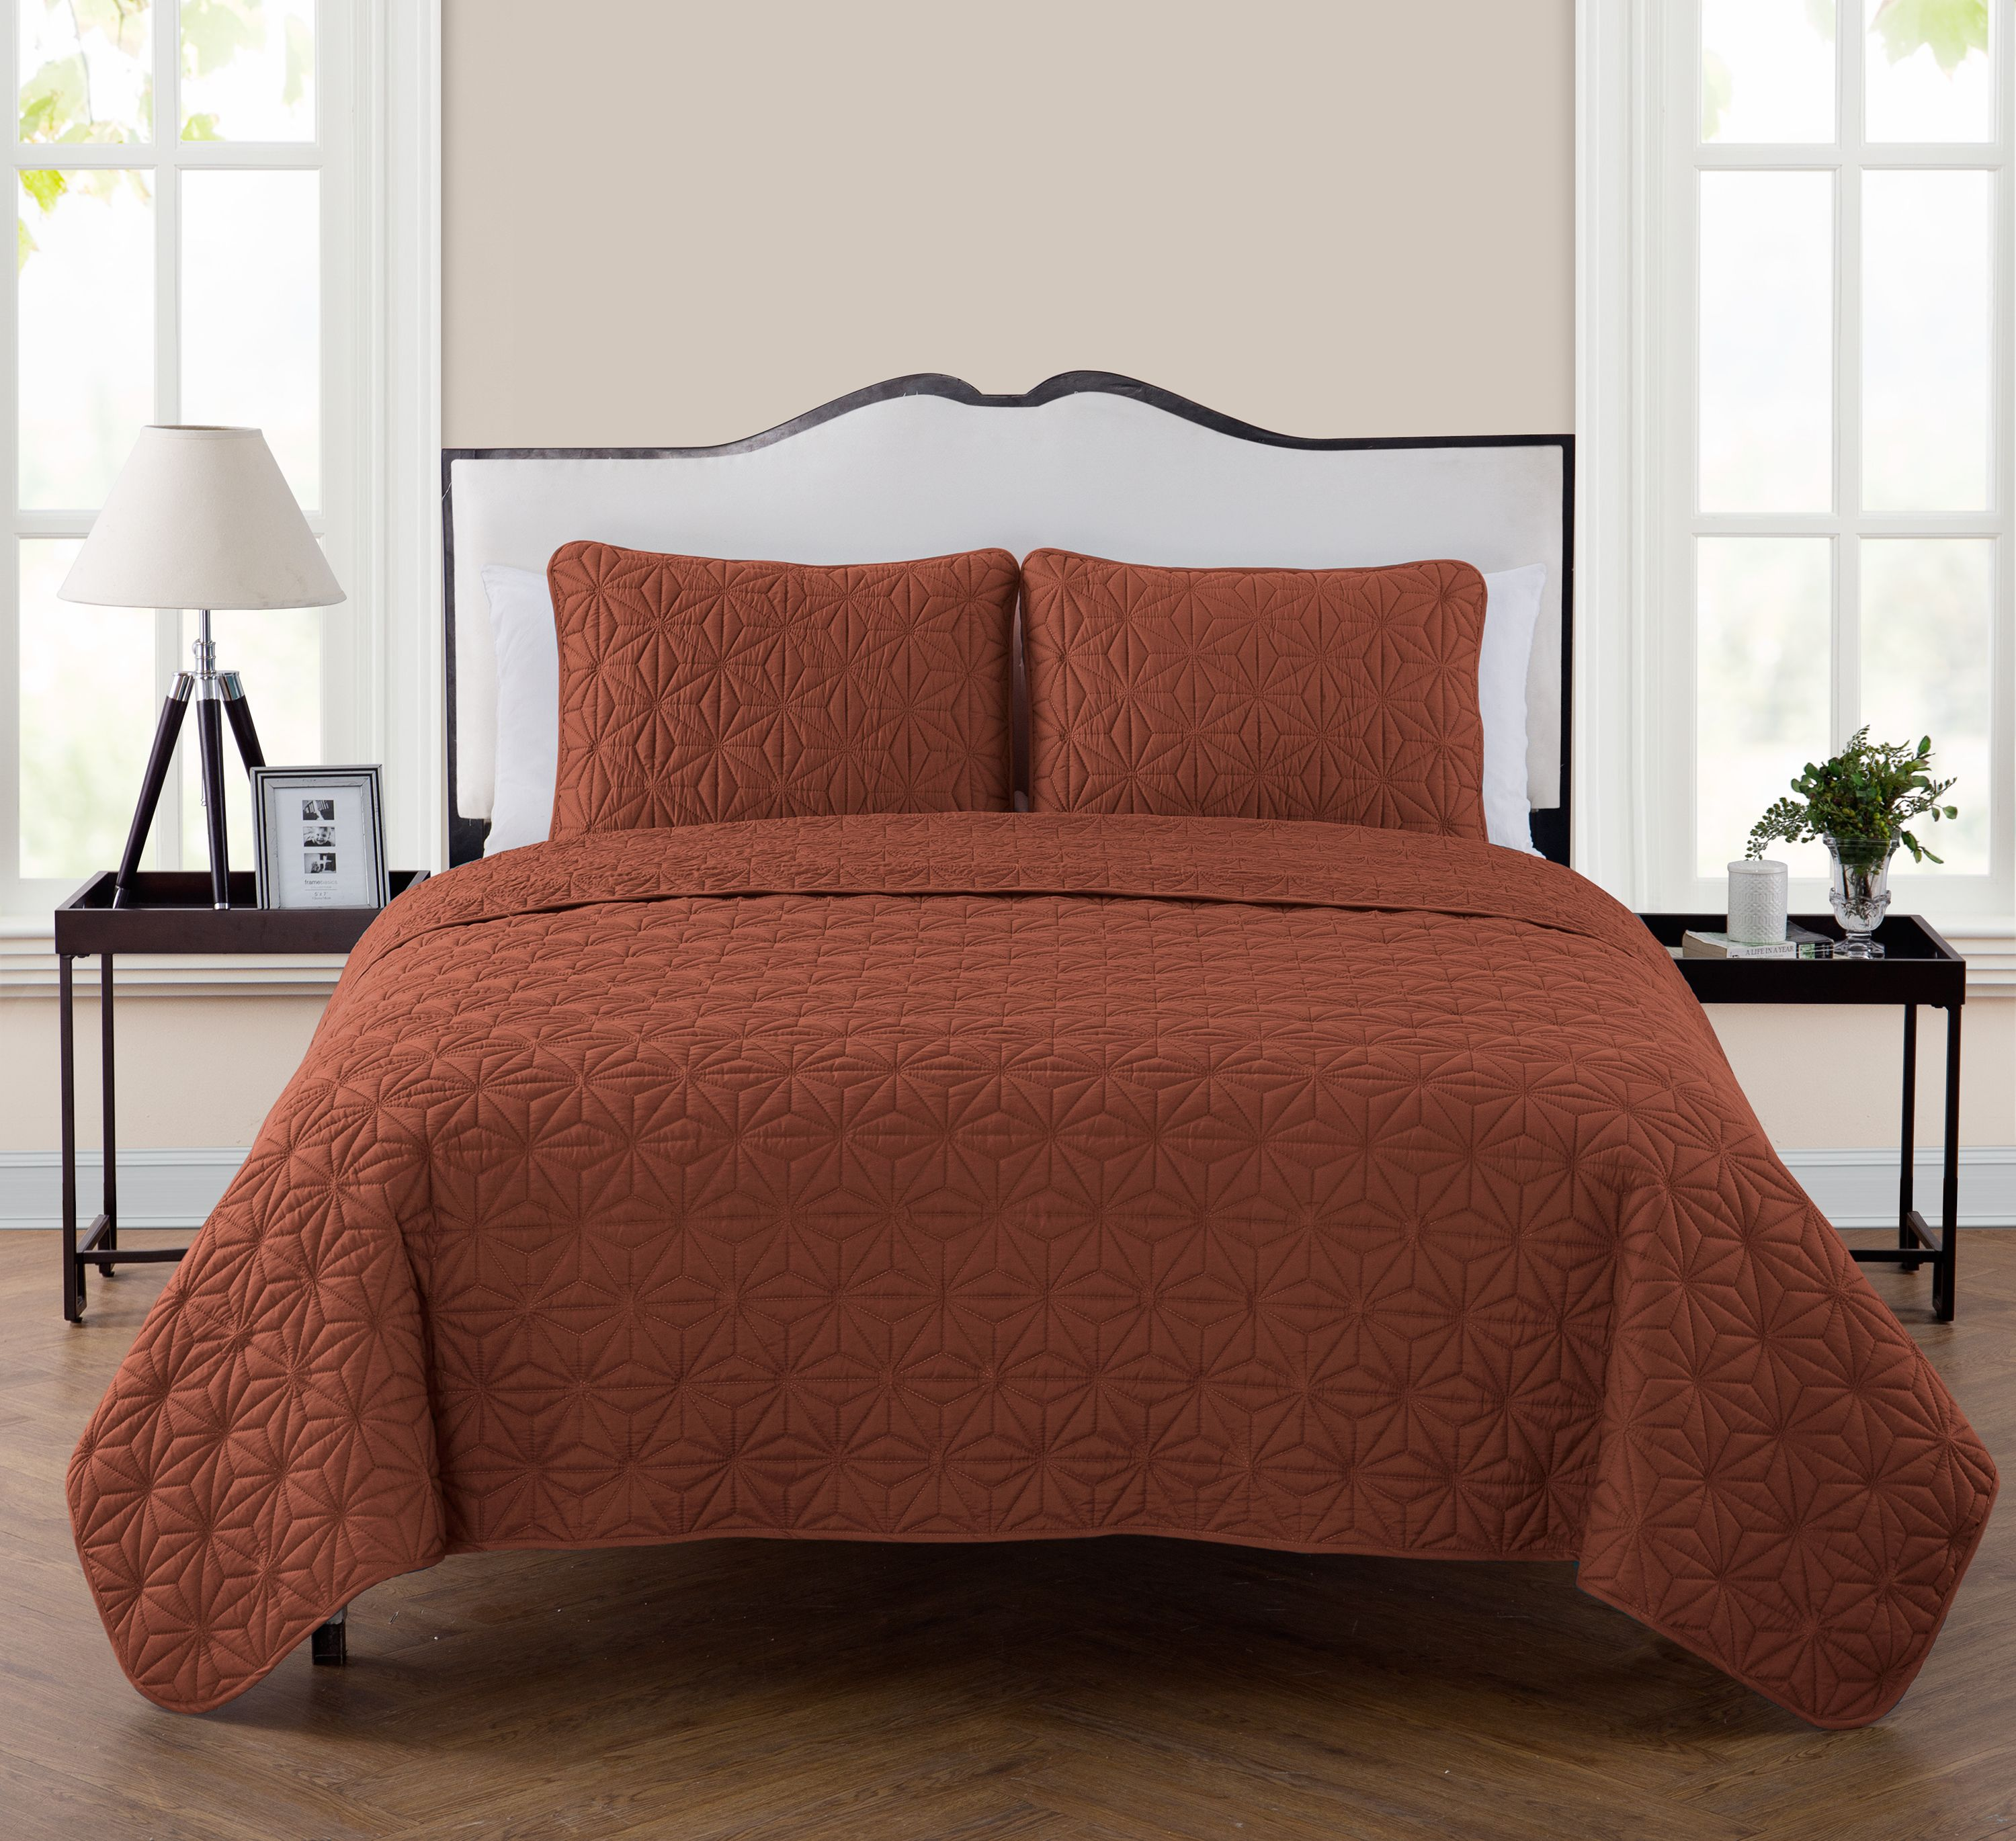 VCNY Home Kaleidoscope 3-Piece Geometric Embossed Bedding Quilt Set, Multiple Colors and Sizes Available